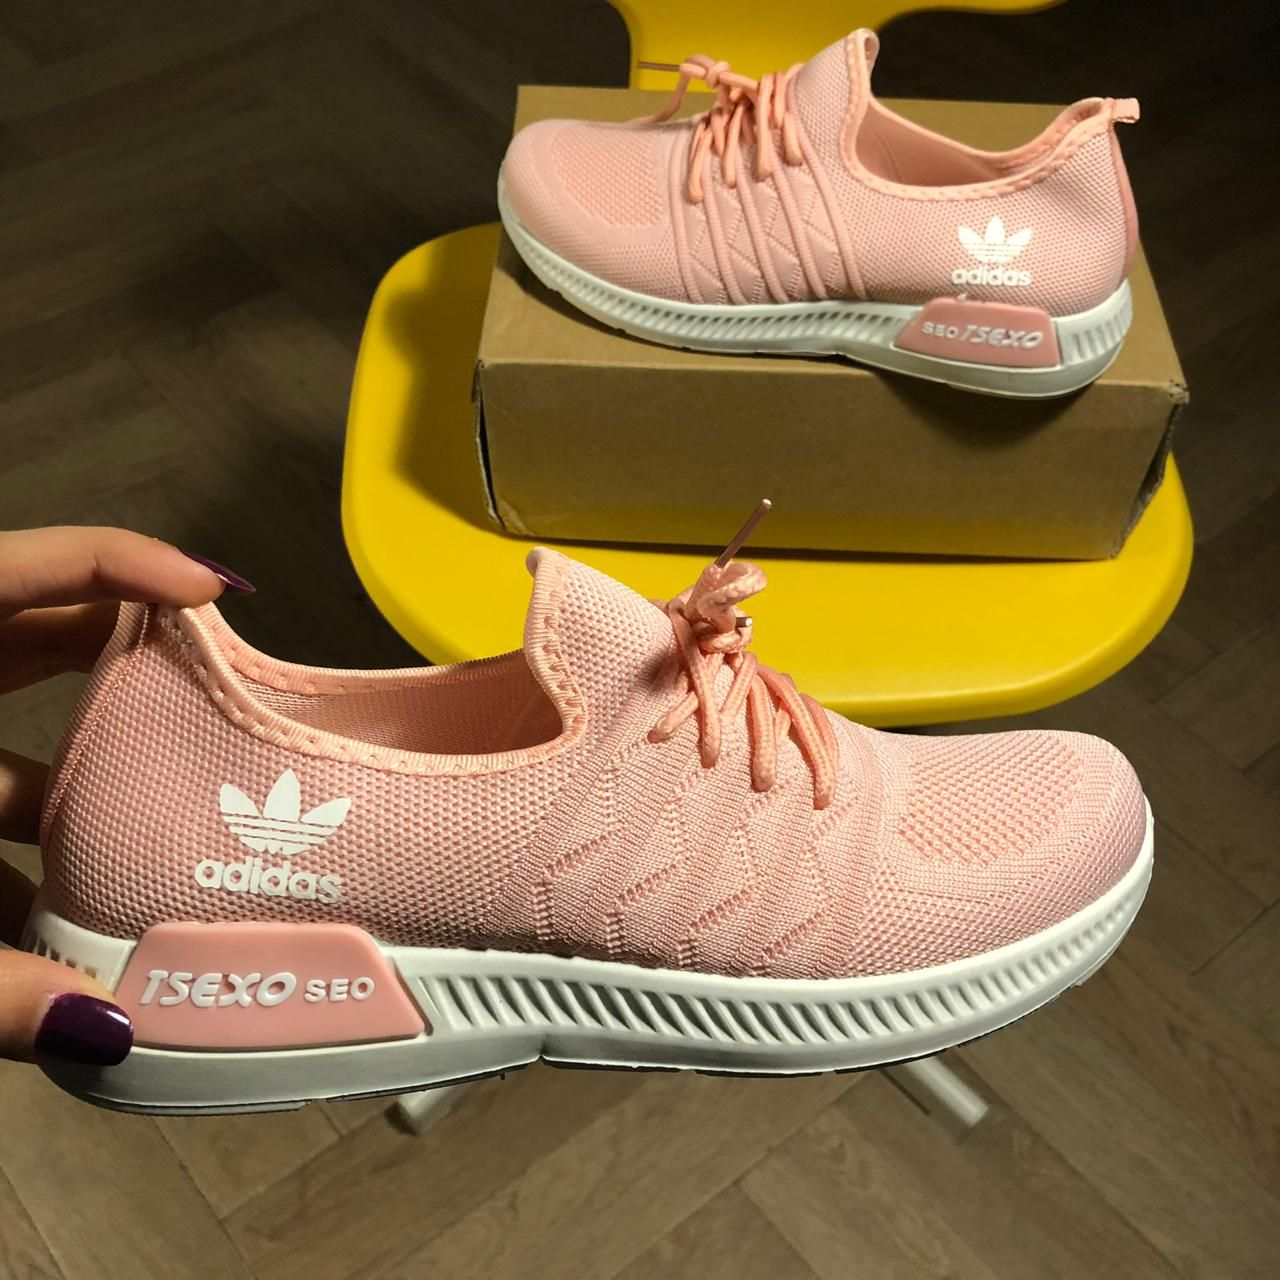 Pin By Rose99 On Shop Sneakers Puma Sneaker Shoes